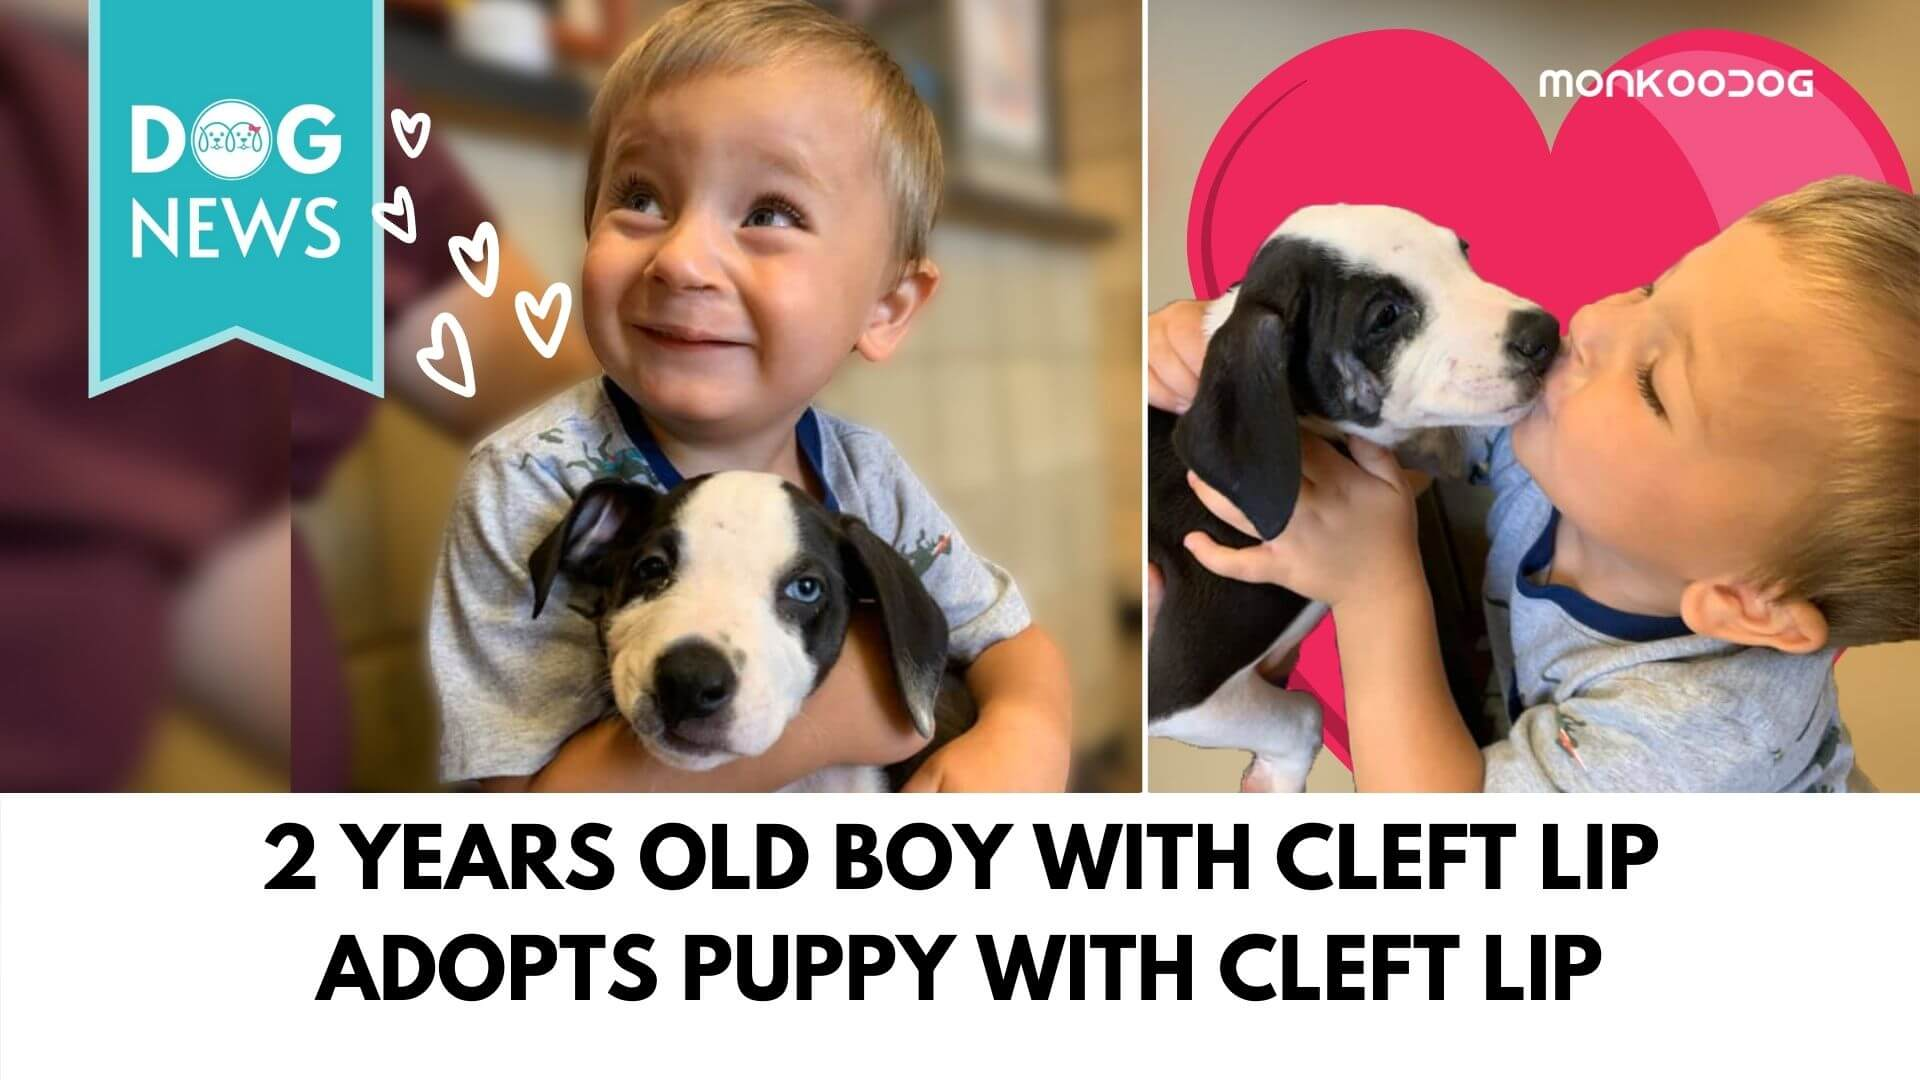 A puppy with cleft lip and a 2 years old boy with cleft lip fell in love with each other